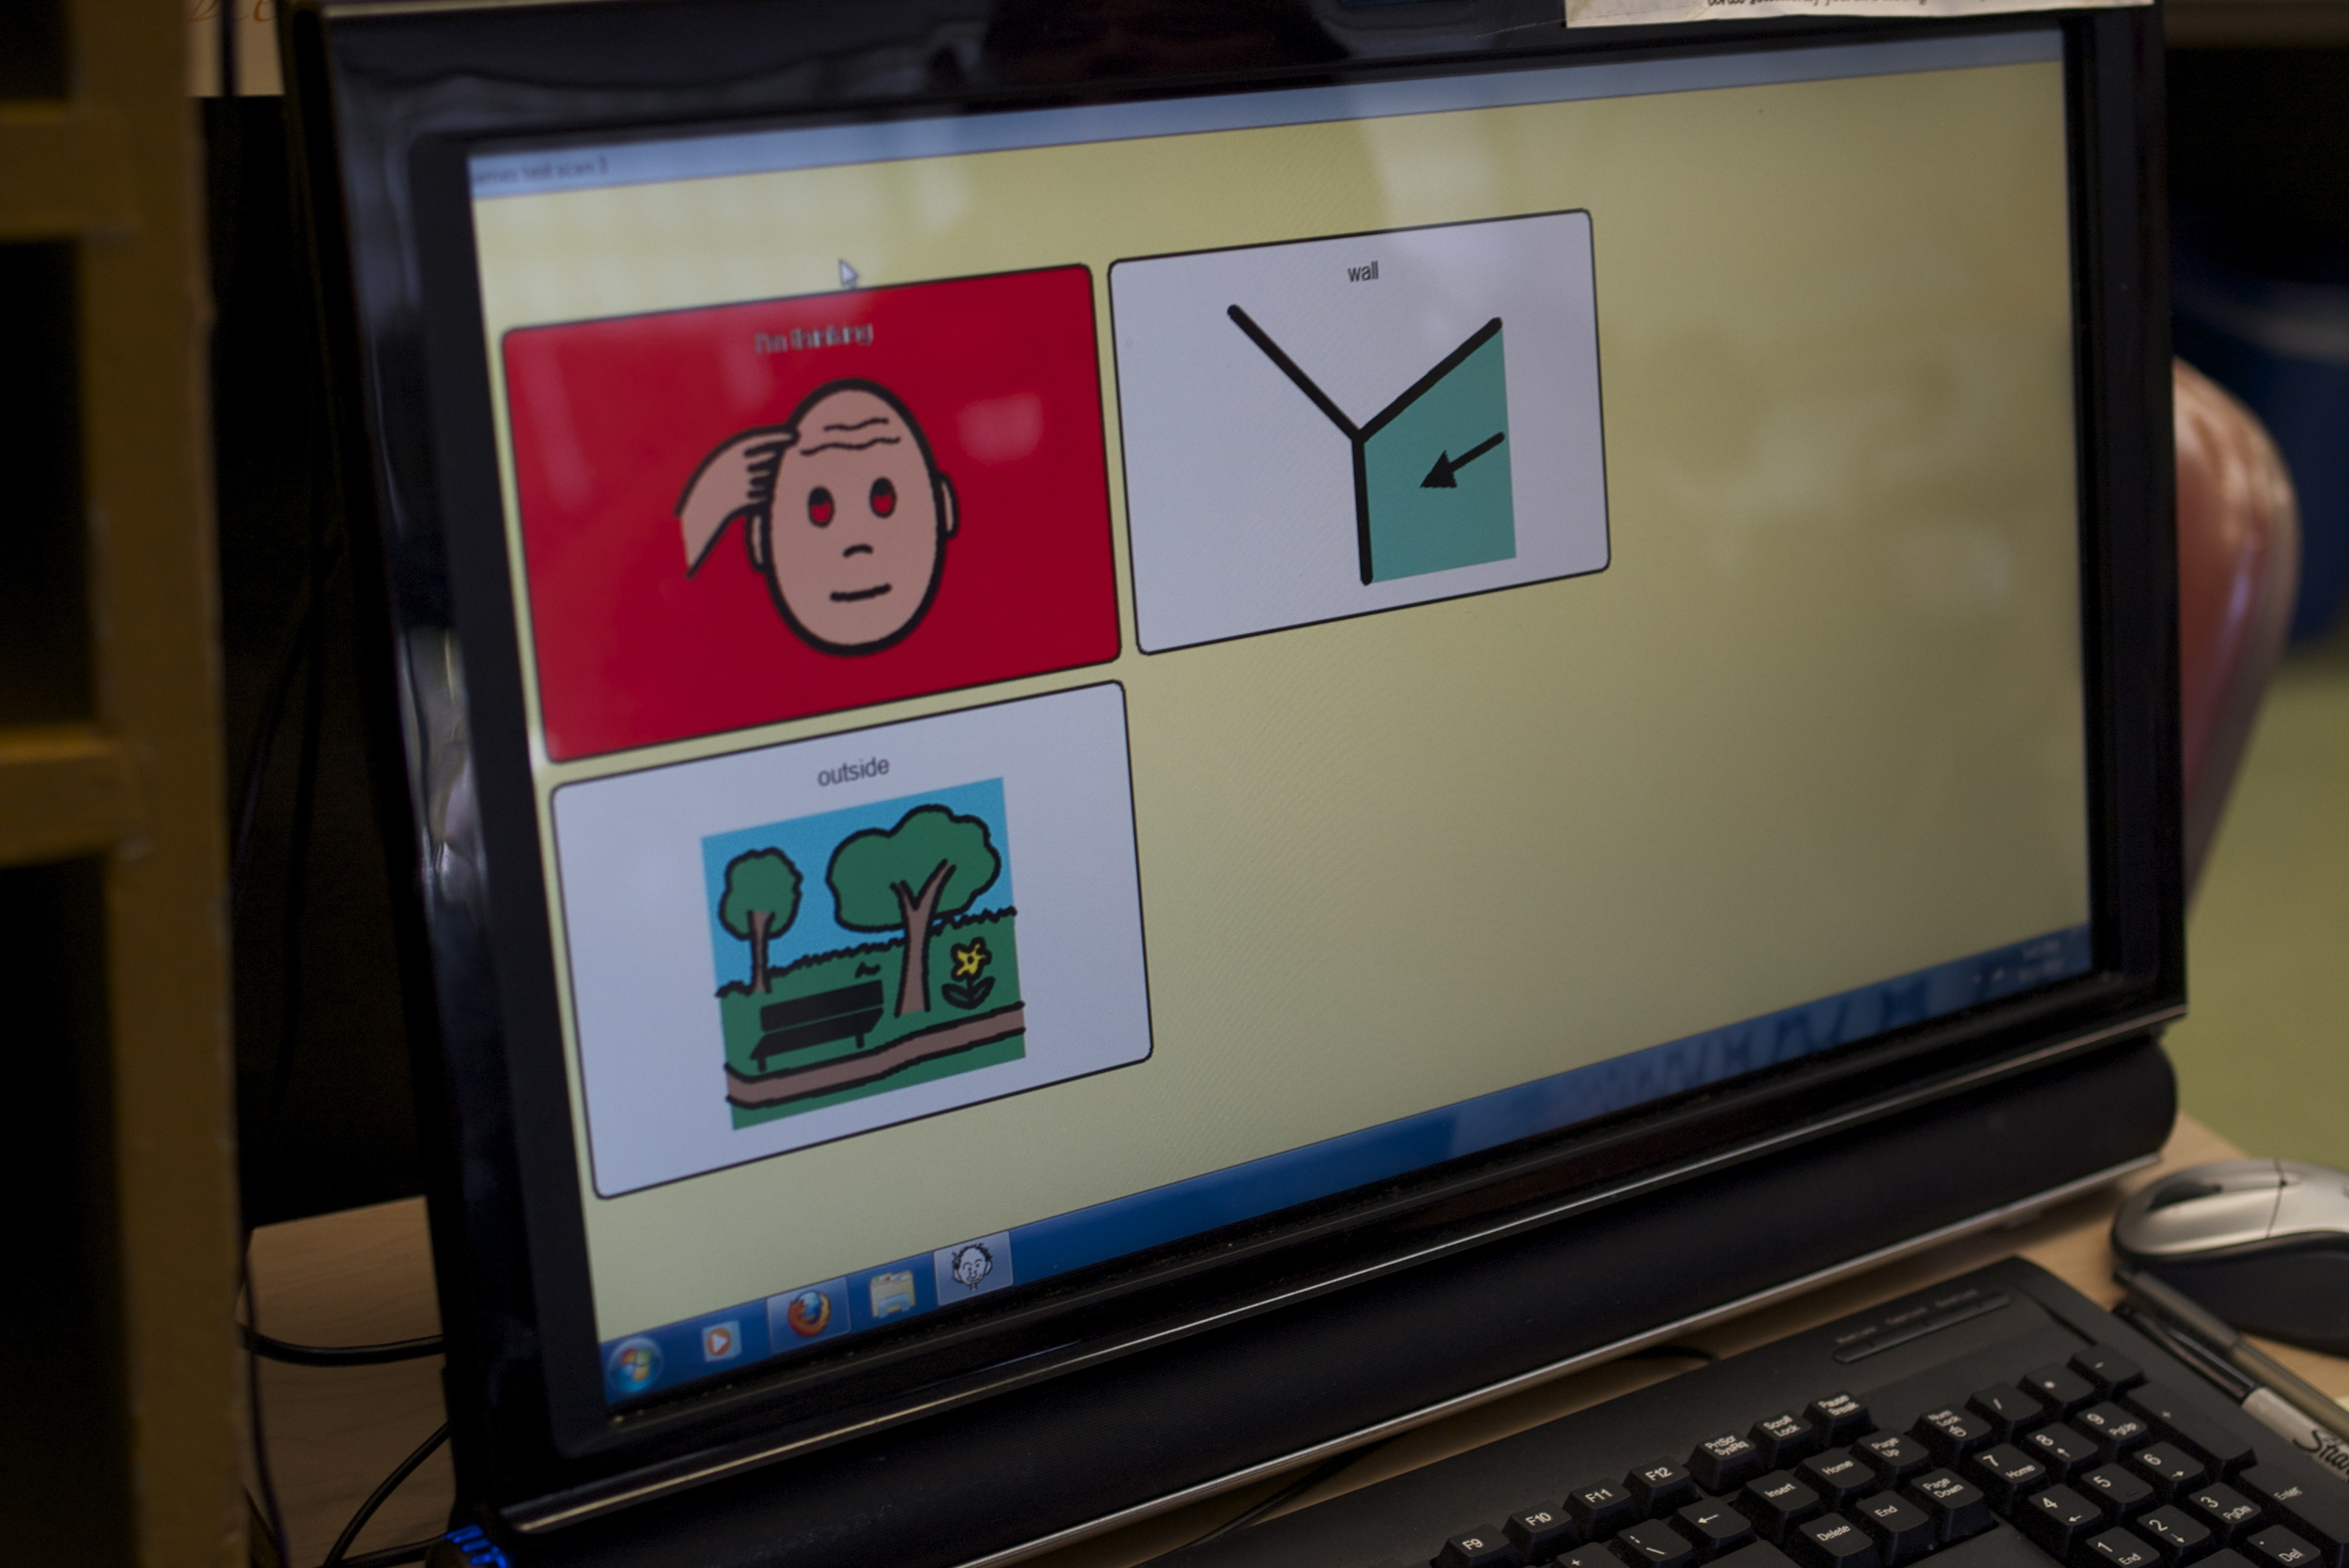 Several nonverbal students use Augmentative and Alternative Communication systems that consist of a speaker board pre-populated with images and words. Teachers and caregivers update the vocabulary based on the student's needs.